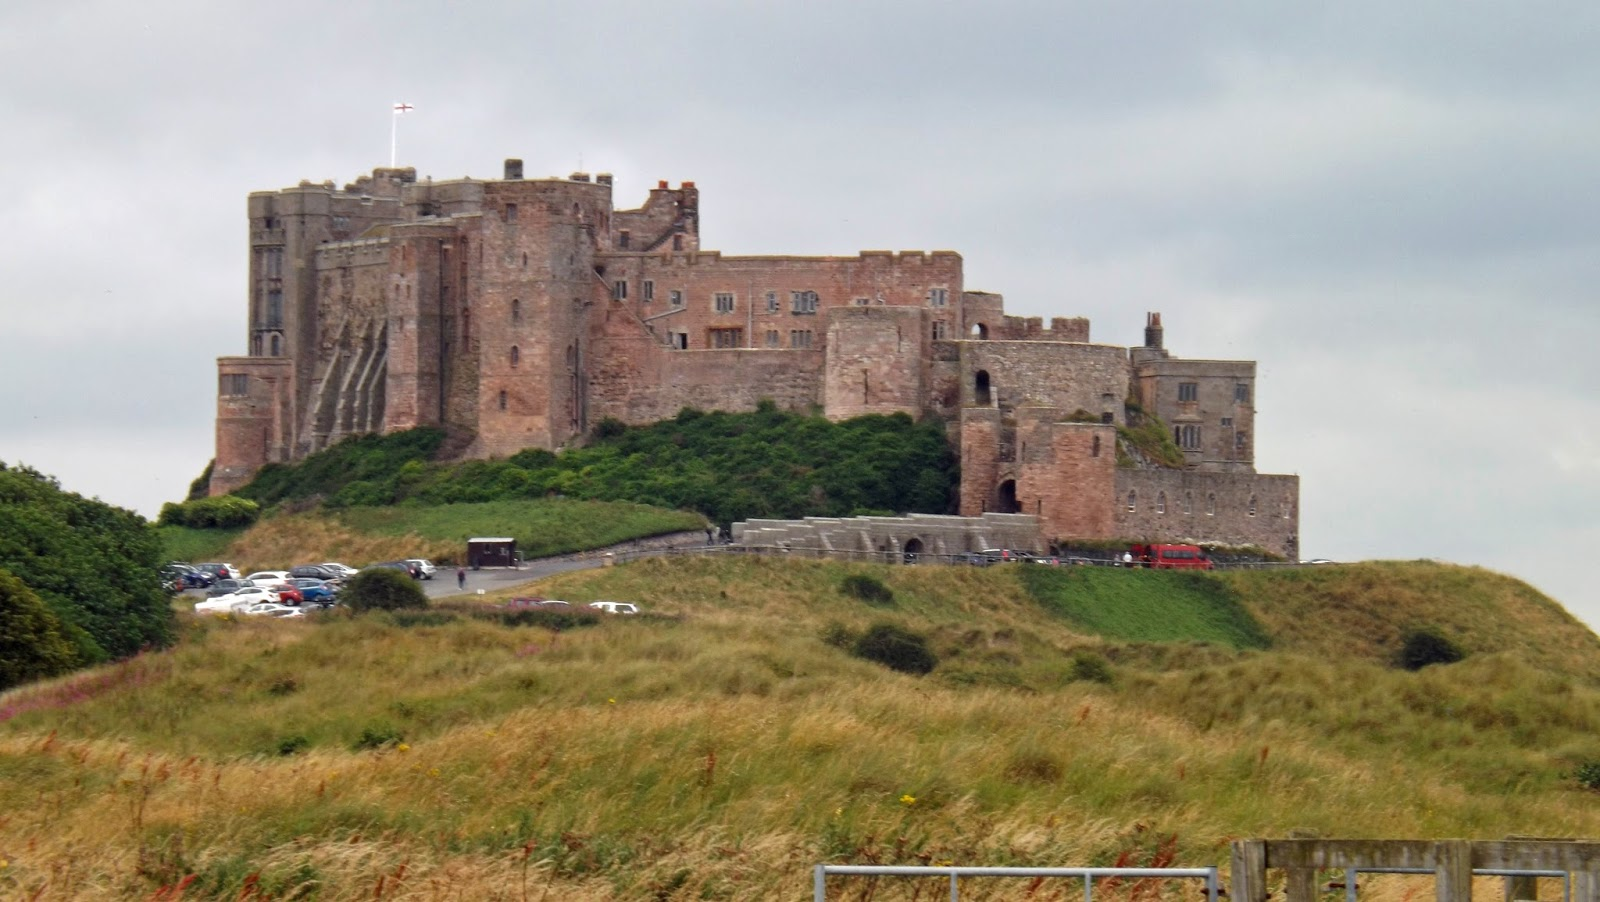 bamburgh castle - photo #16